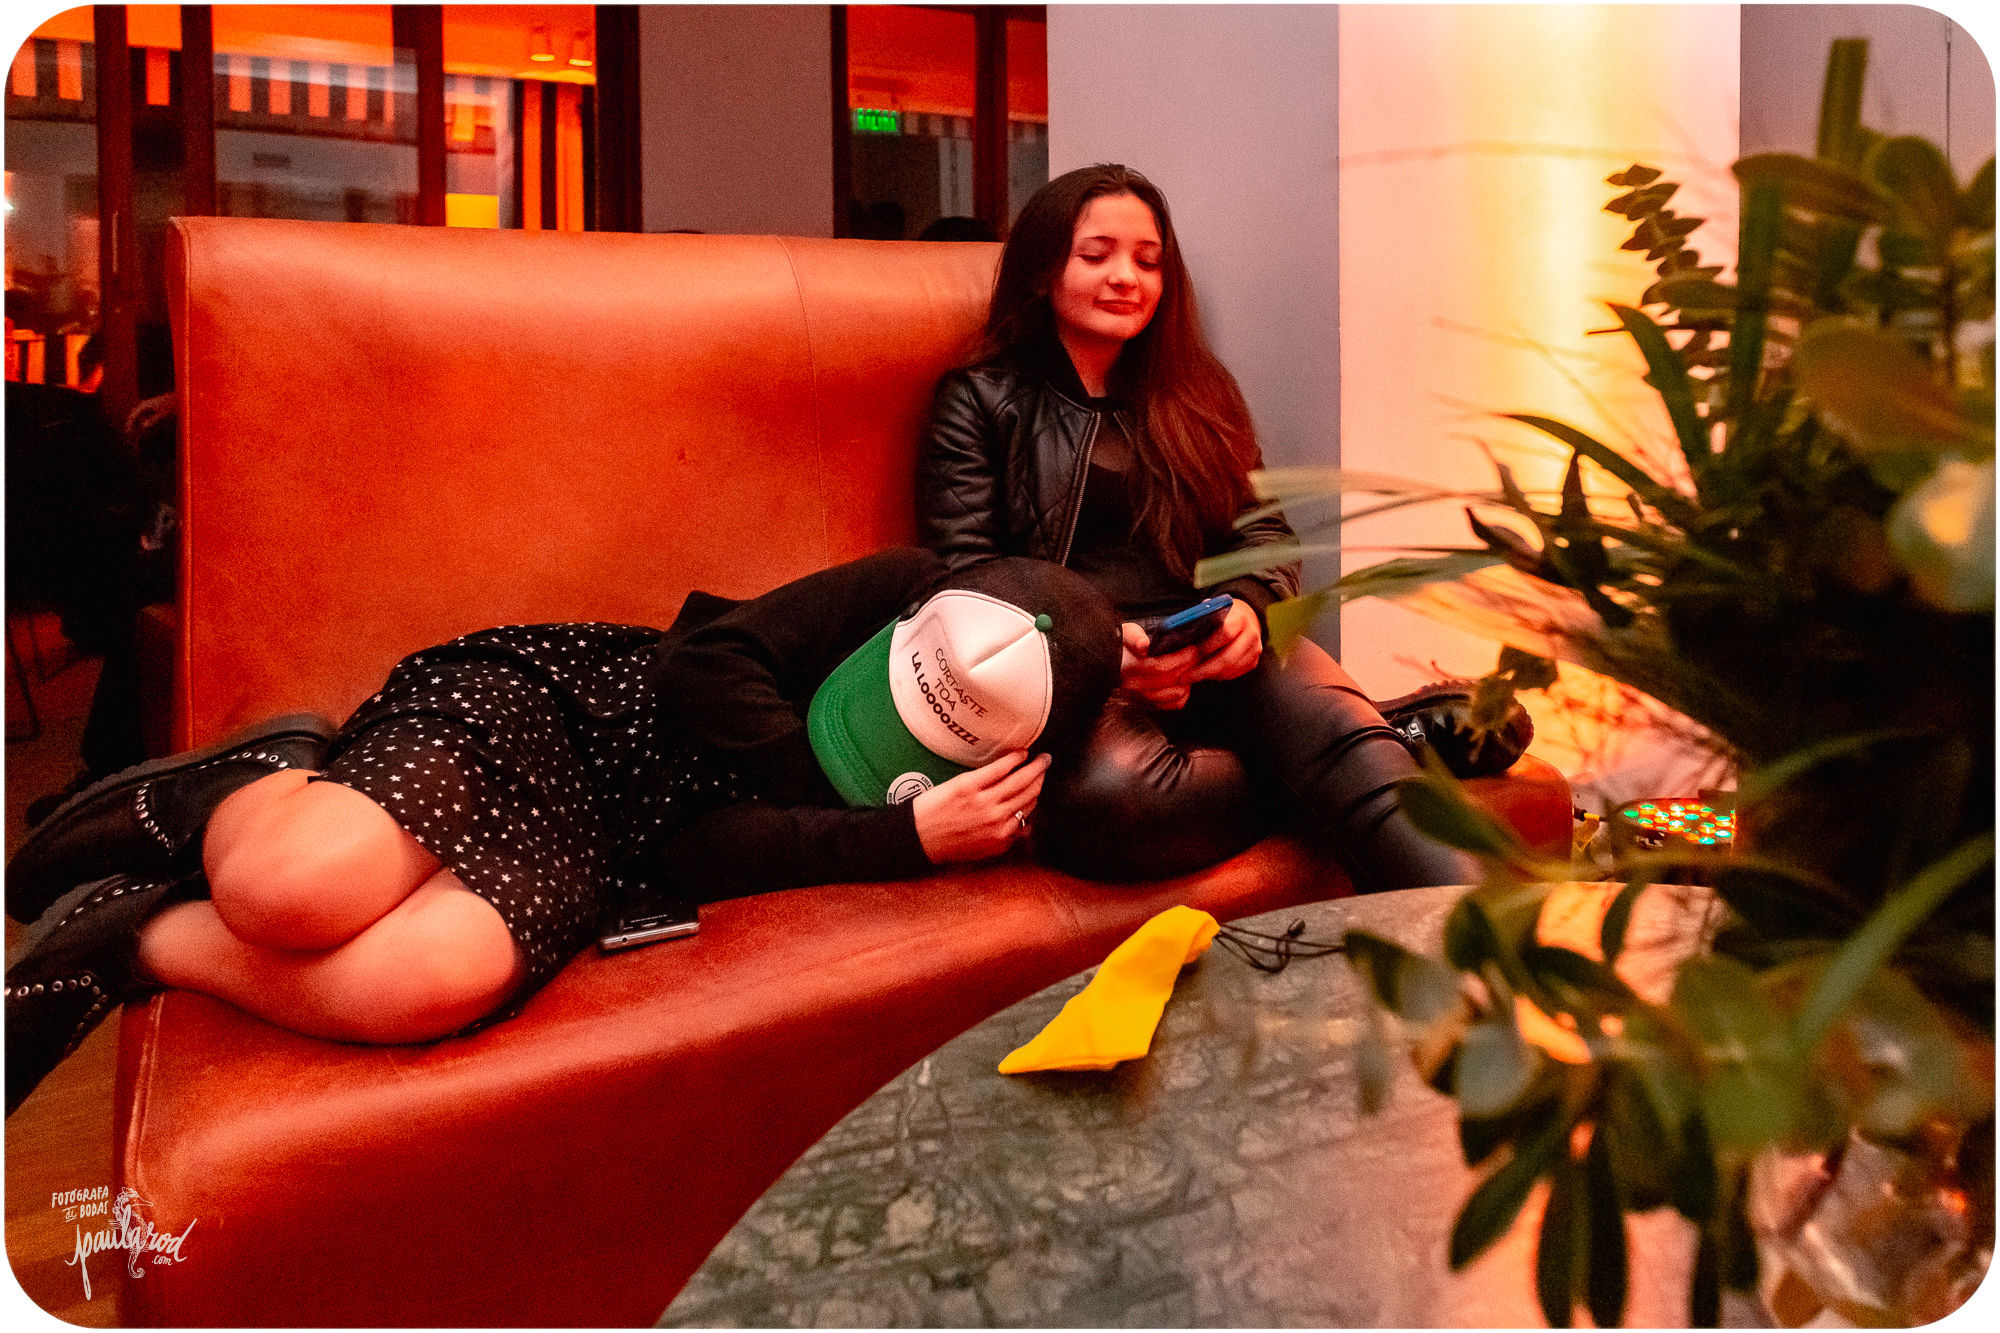 video_cronologico_para_eventos (1).jpg